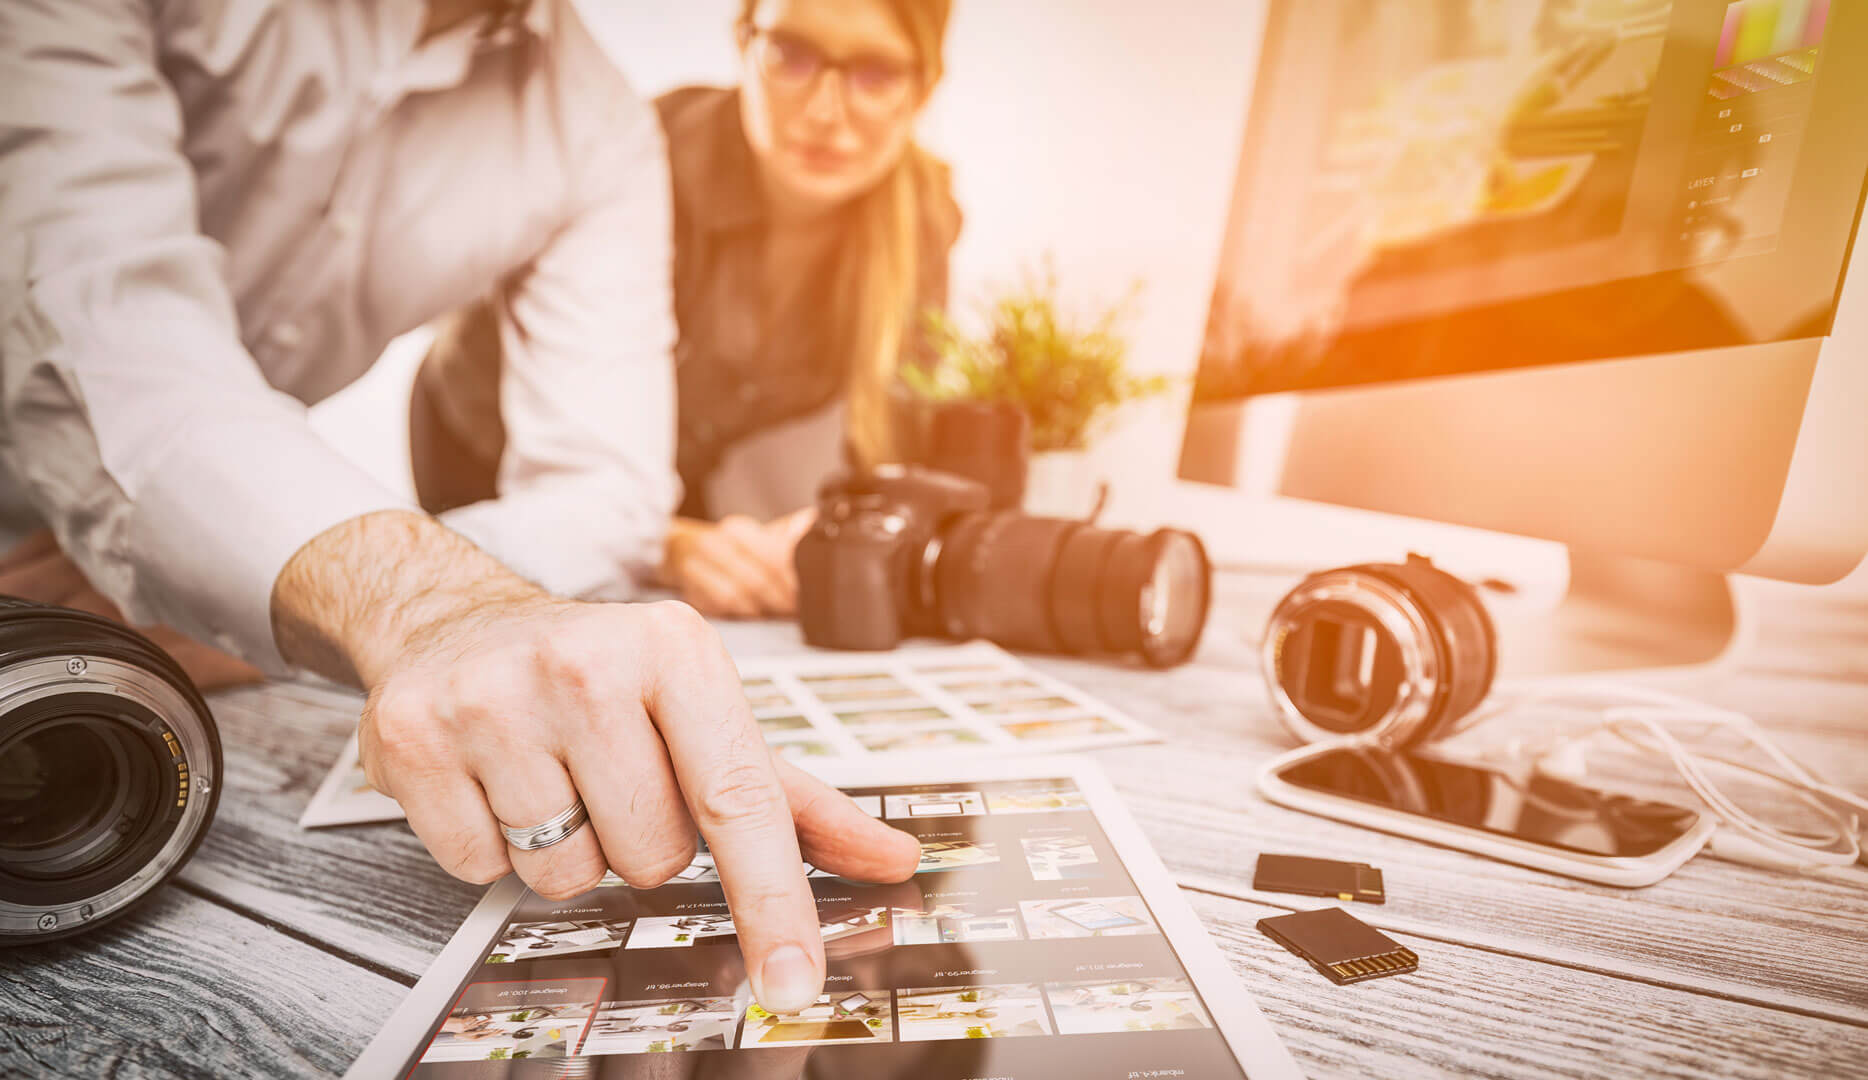 What Is Digital Asset Management (DAM) & Why Should Marketers Care?